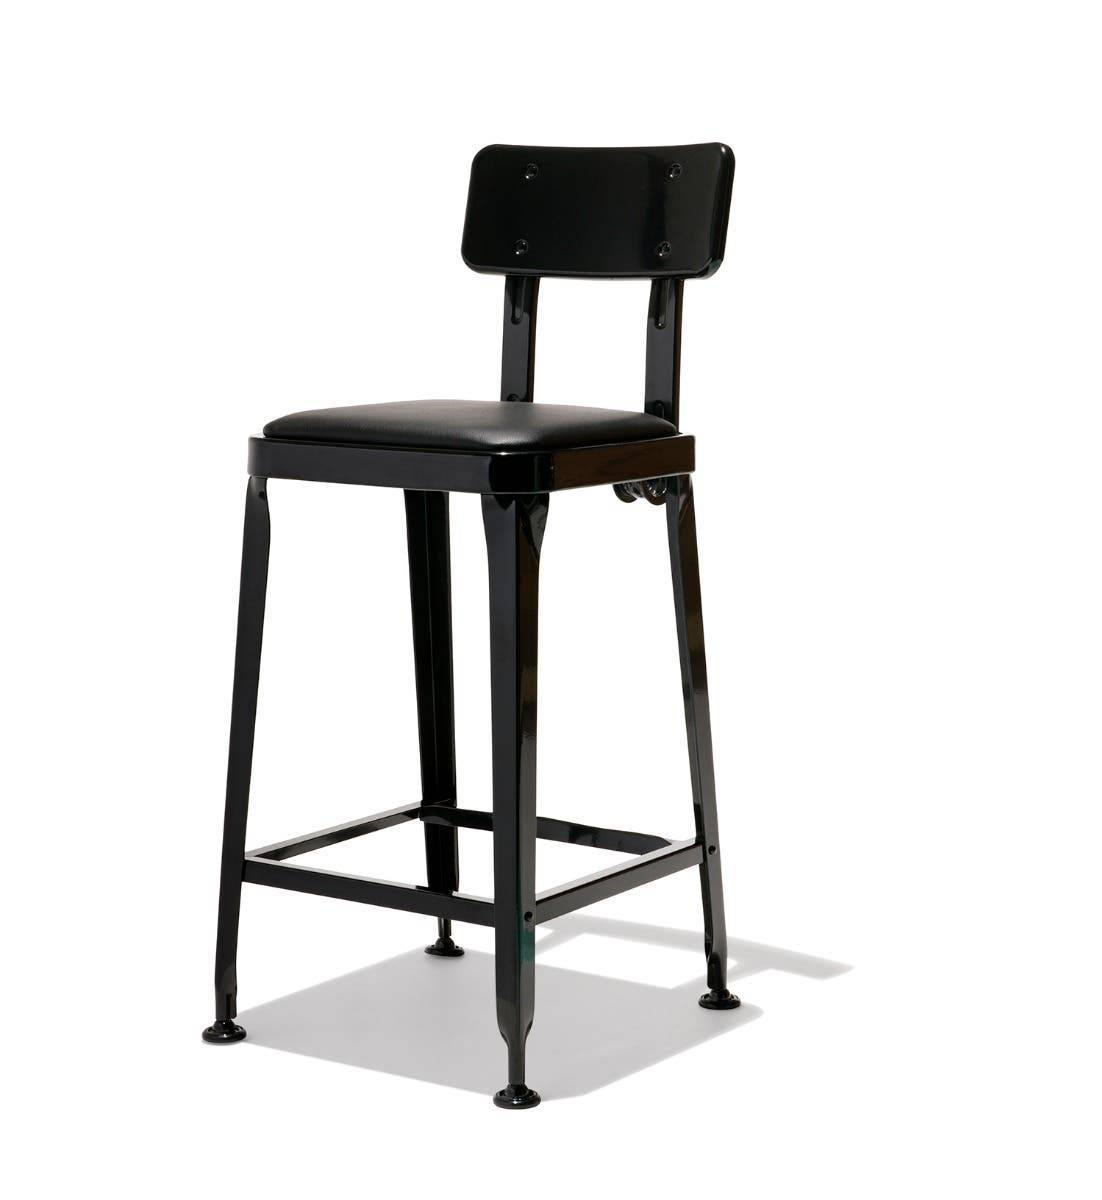 Industry West Octane Counter Stool